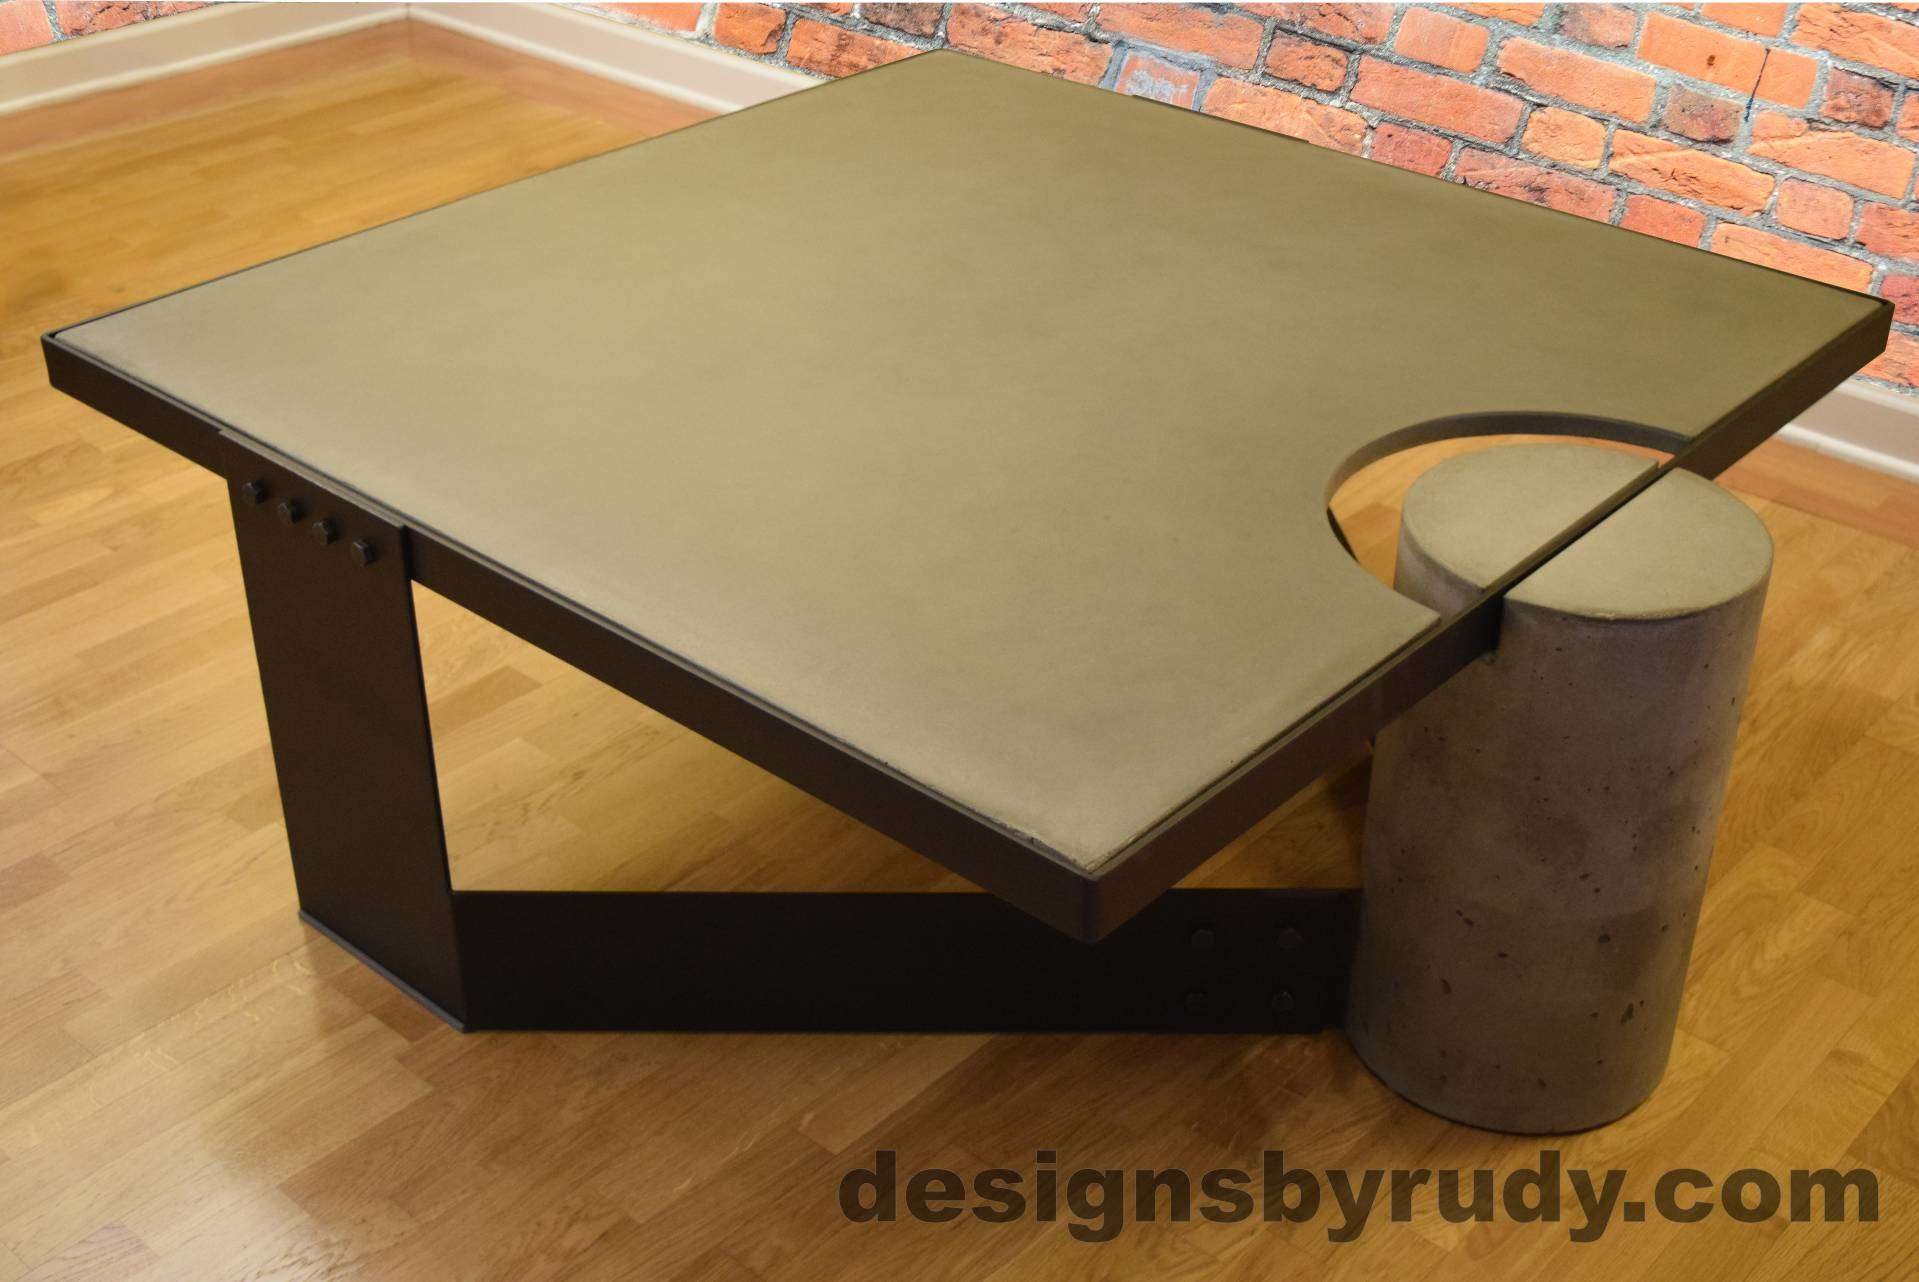 DR30 Gray Concrete Coffee Table with Black Powder Coated Frame Gallery